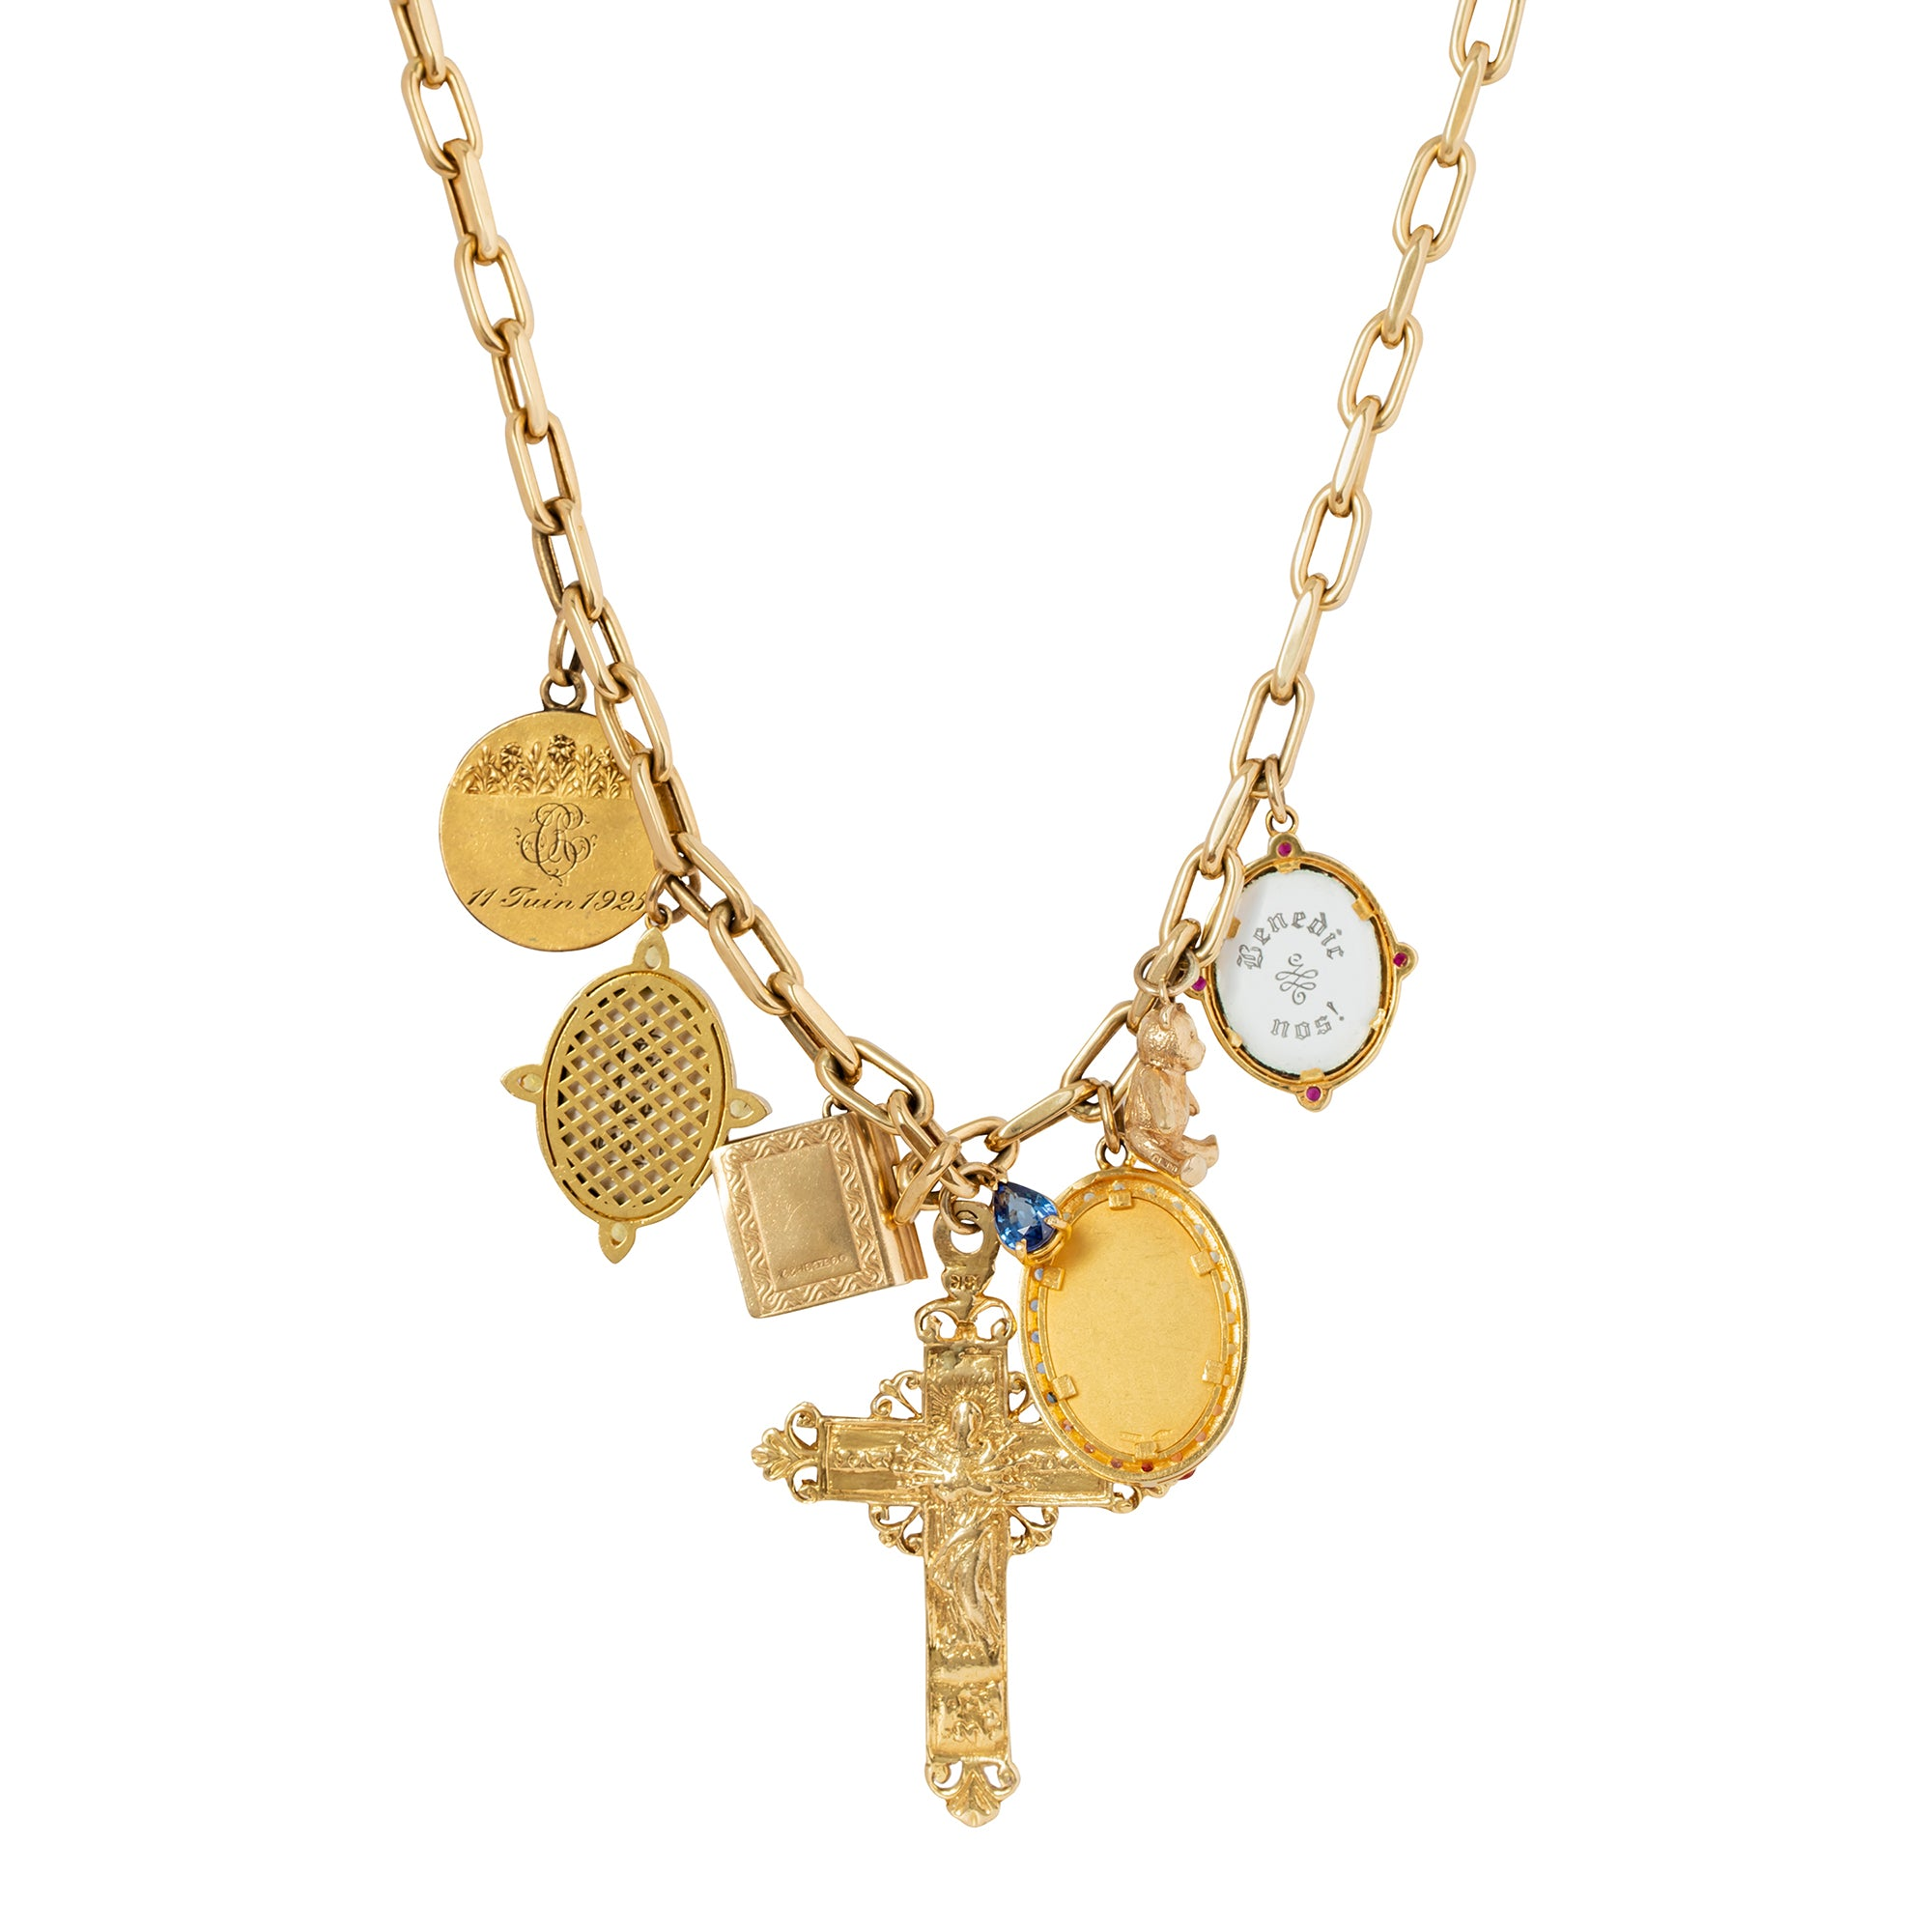 Colette Cross & Teddy Bear Medal Necklace - Necklaces - Broken English Jewelry